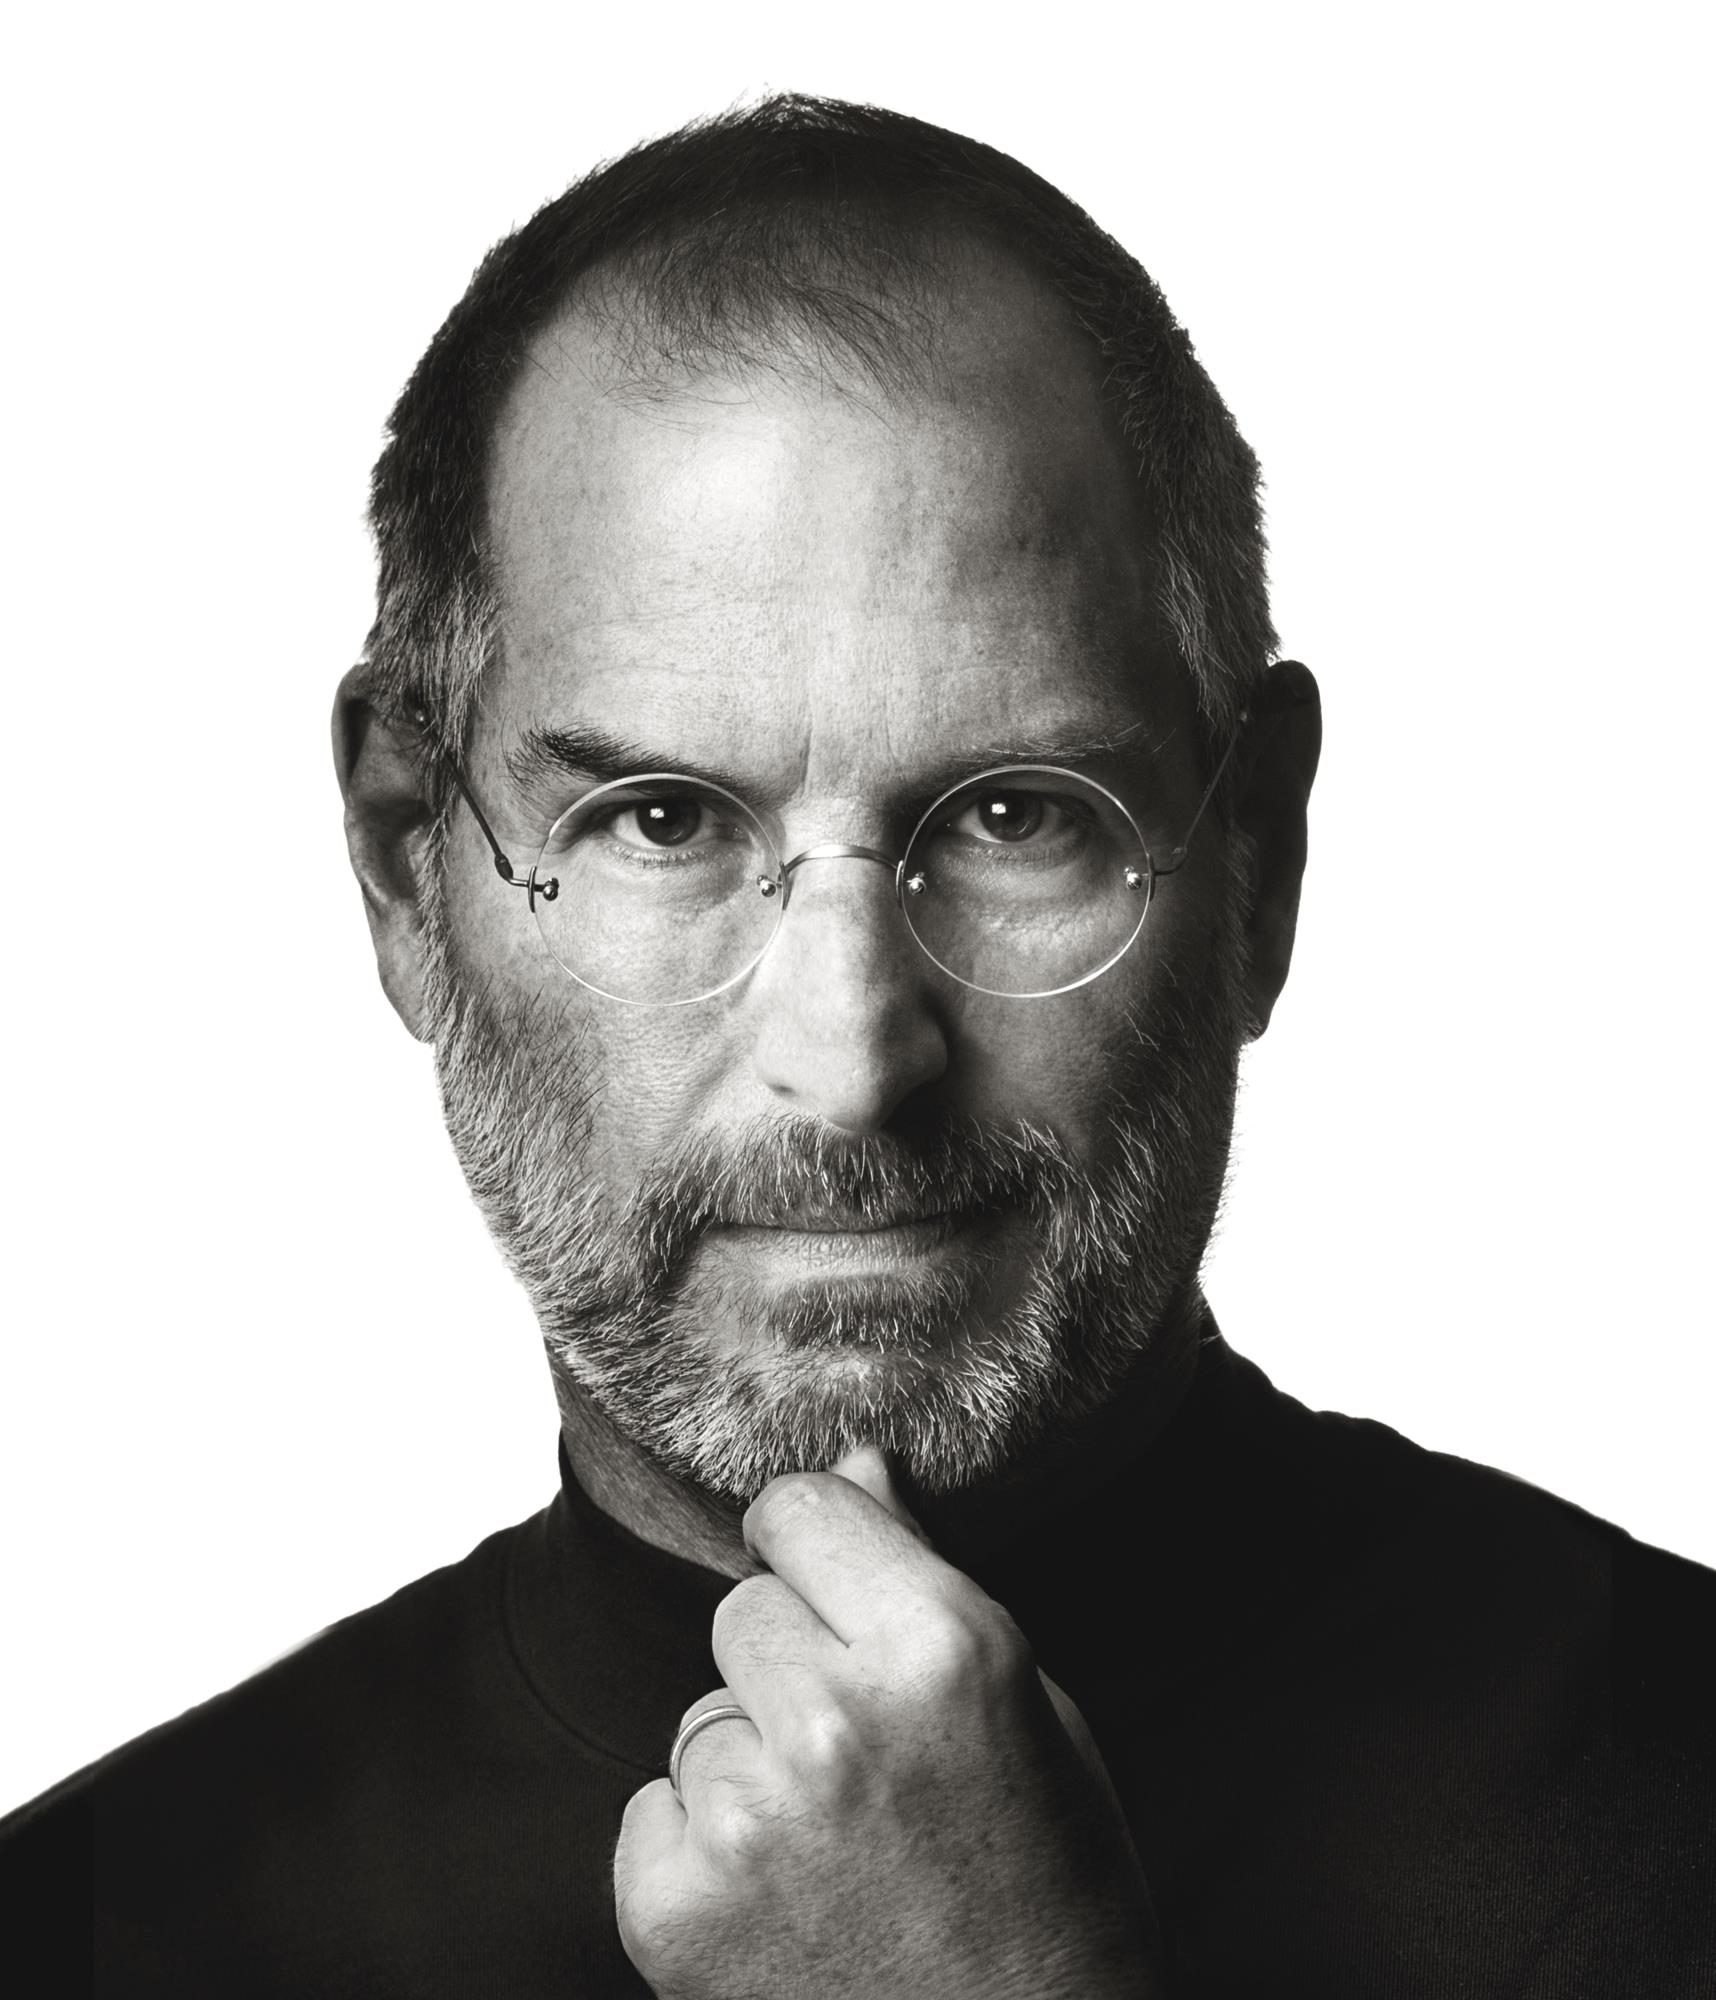 Steve Jobs,1955 - 2011(Photo: Albert Watson)